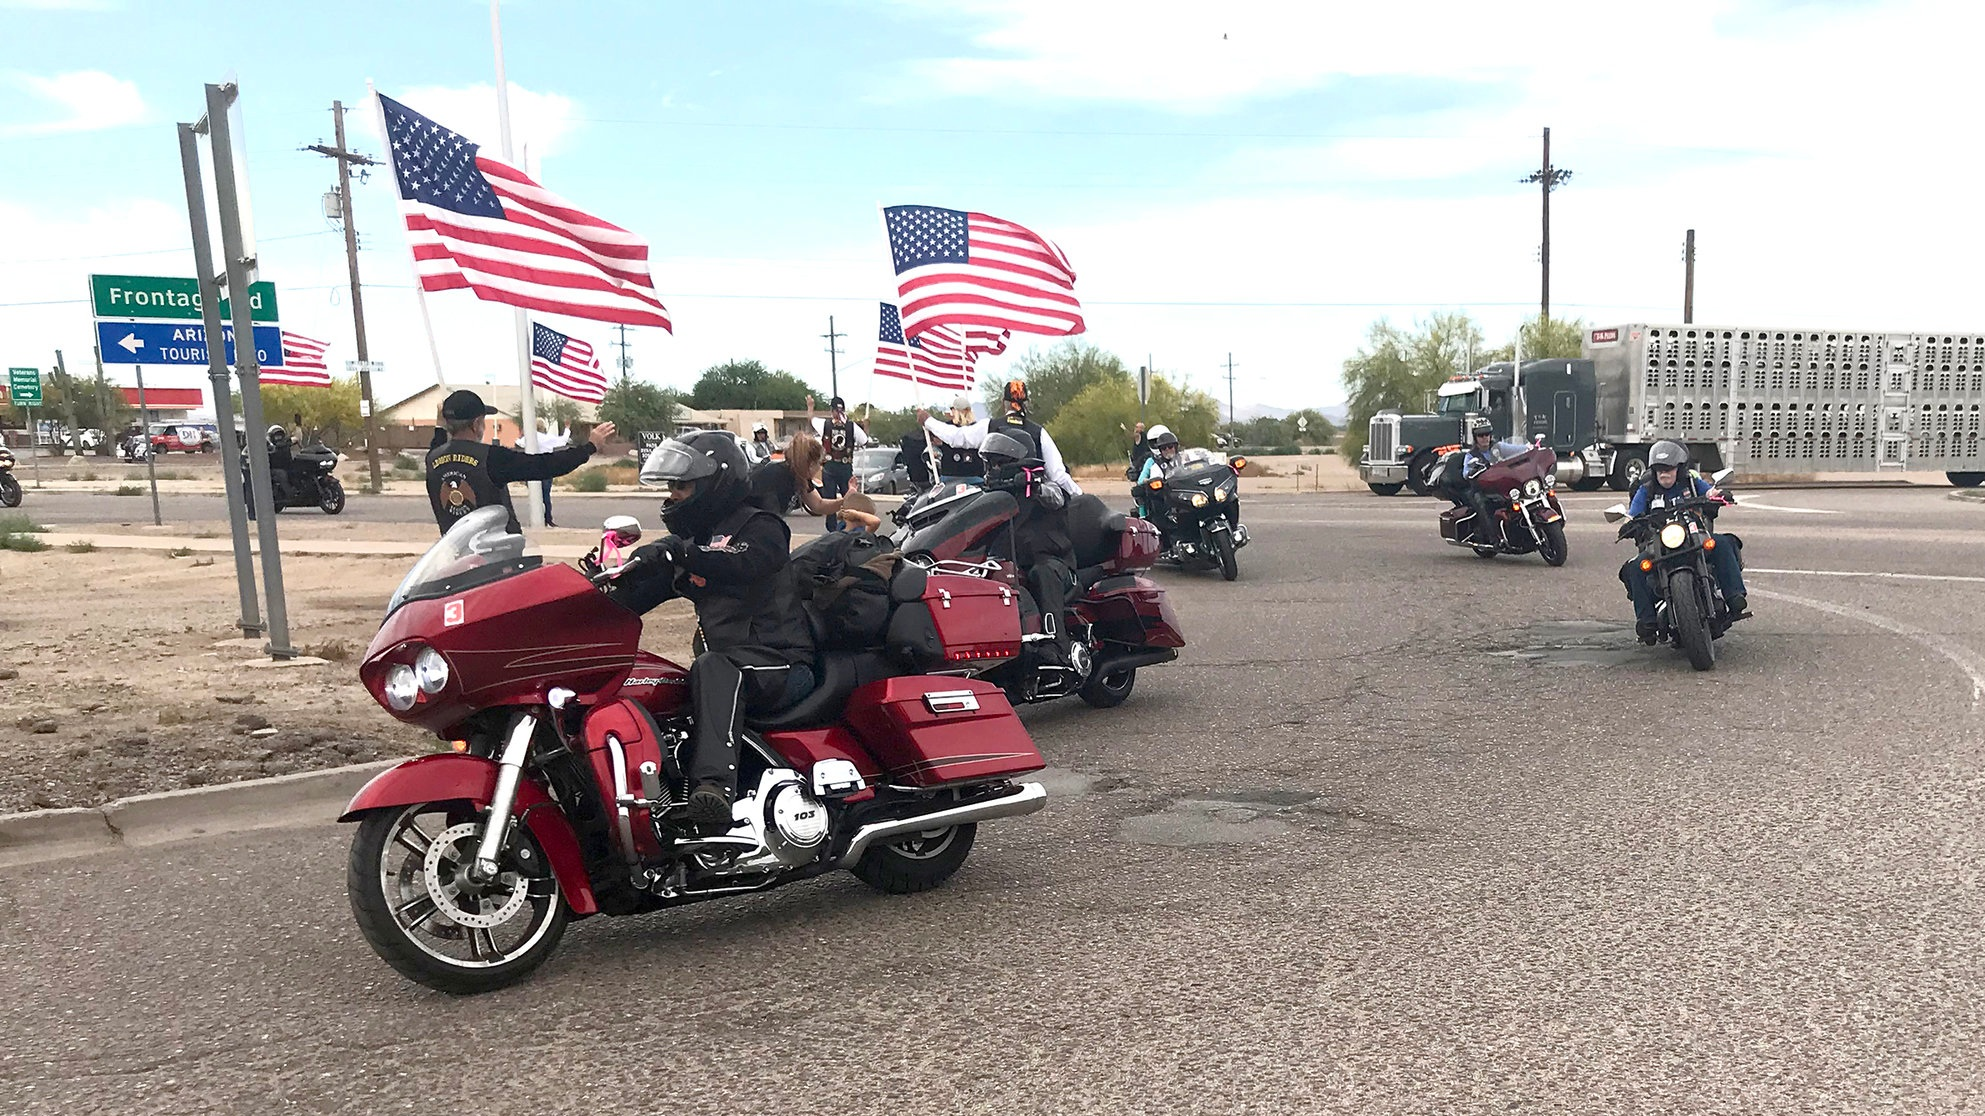 Motorcyclists participating in the annual Run for the Wall visited Marana on My 16.